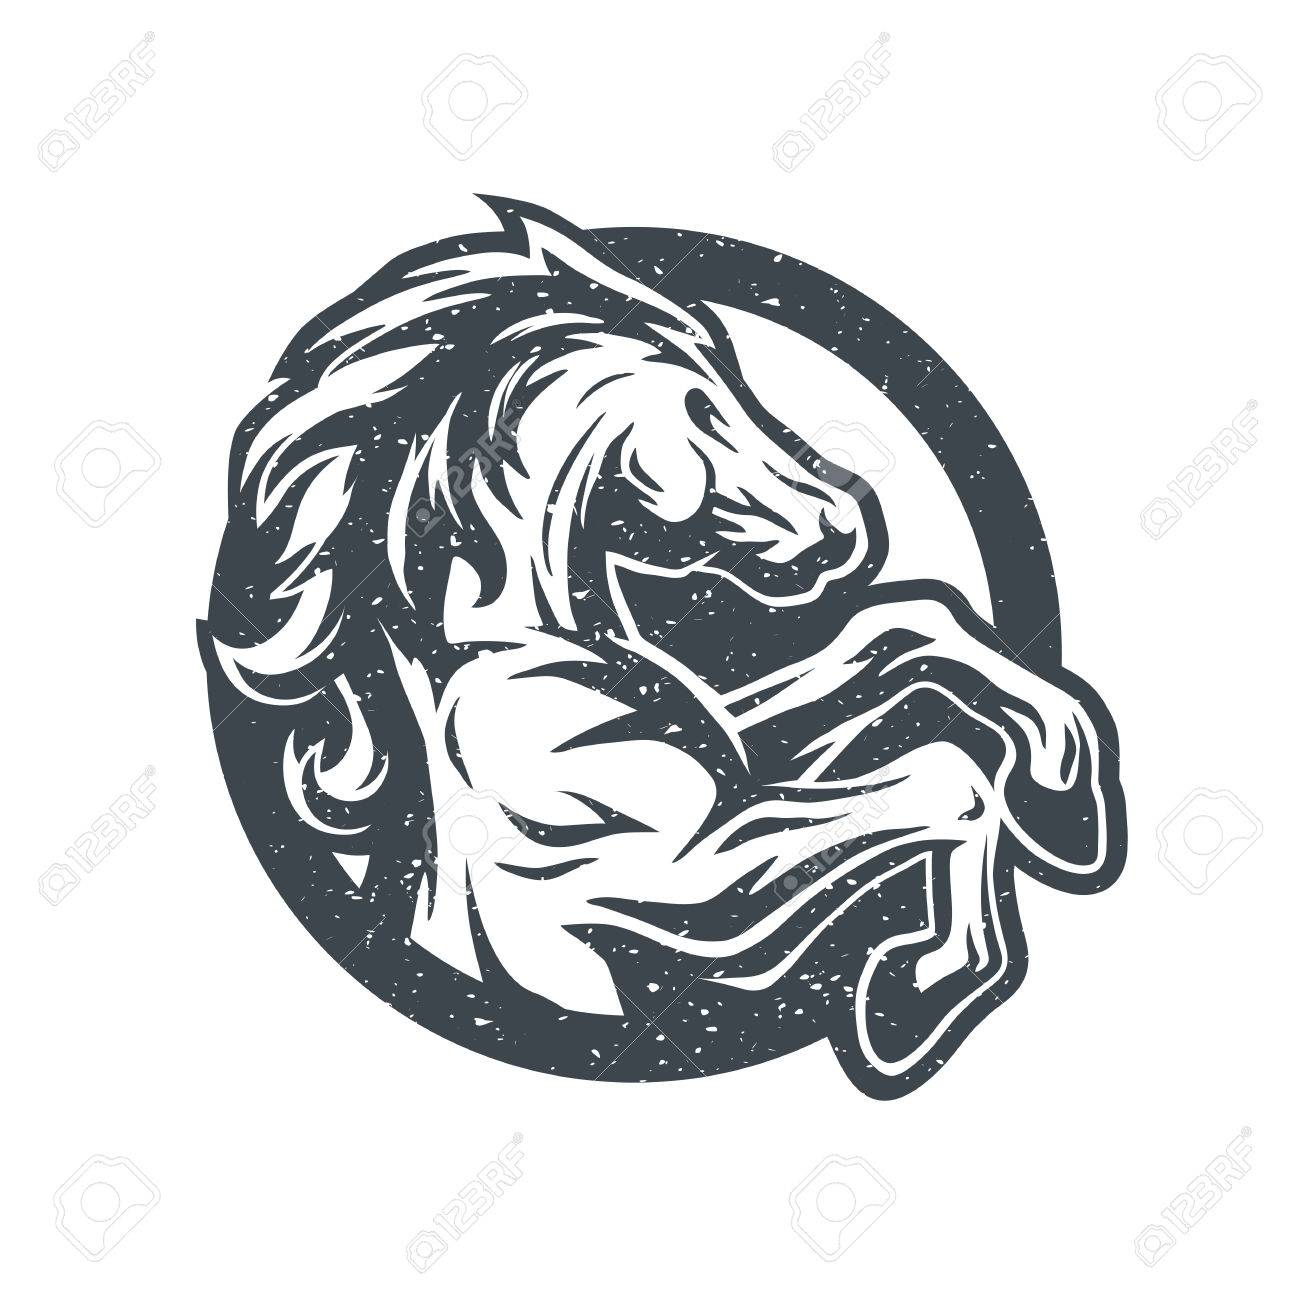 Wild Horse Logo Symbol Vector Illustration Royalty Free Cliparts Vectors And Stock Illustration Image 68098320